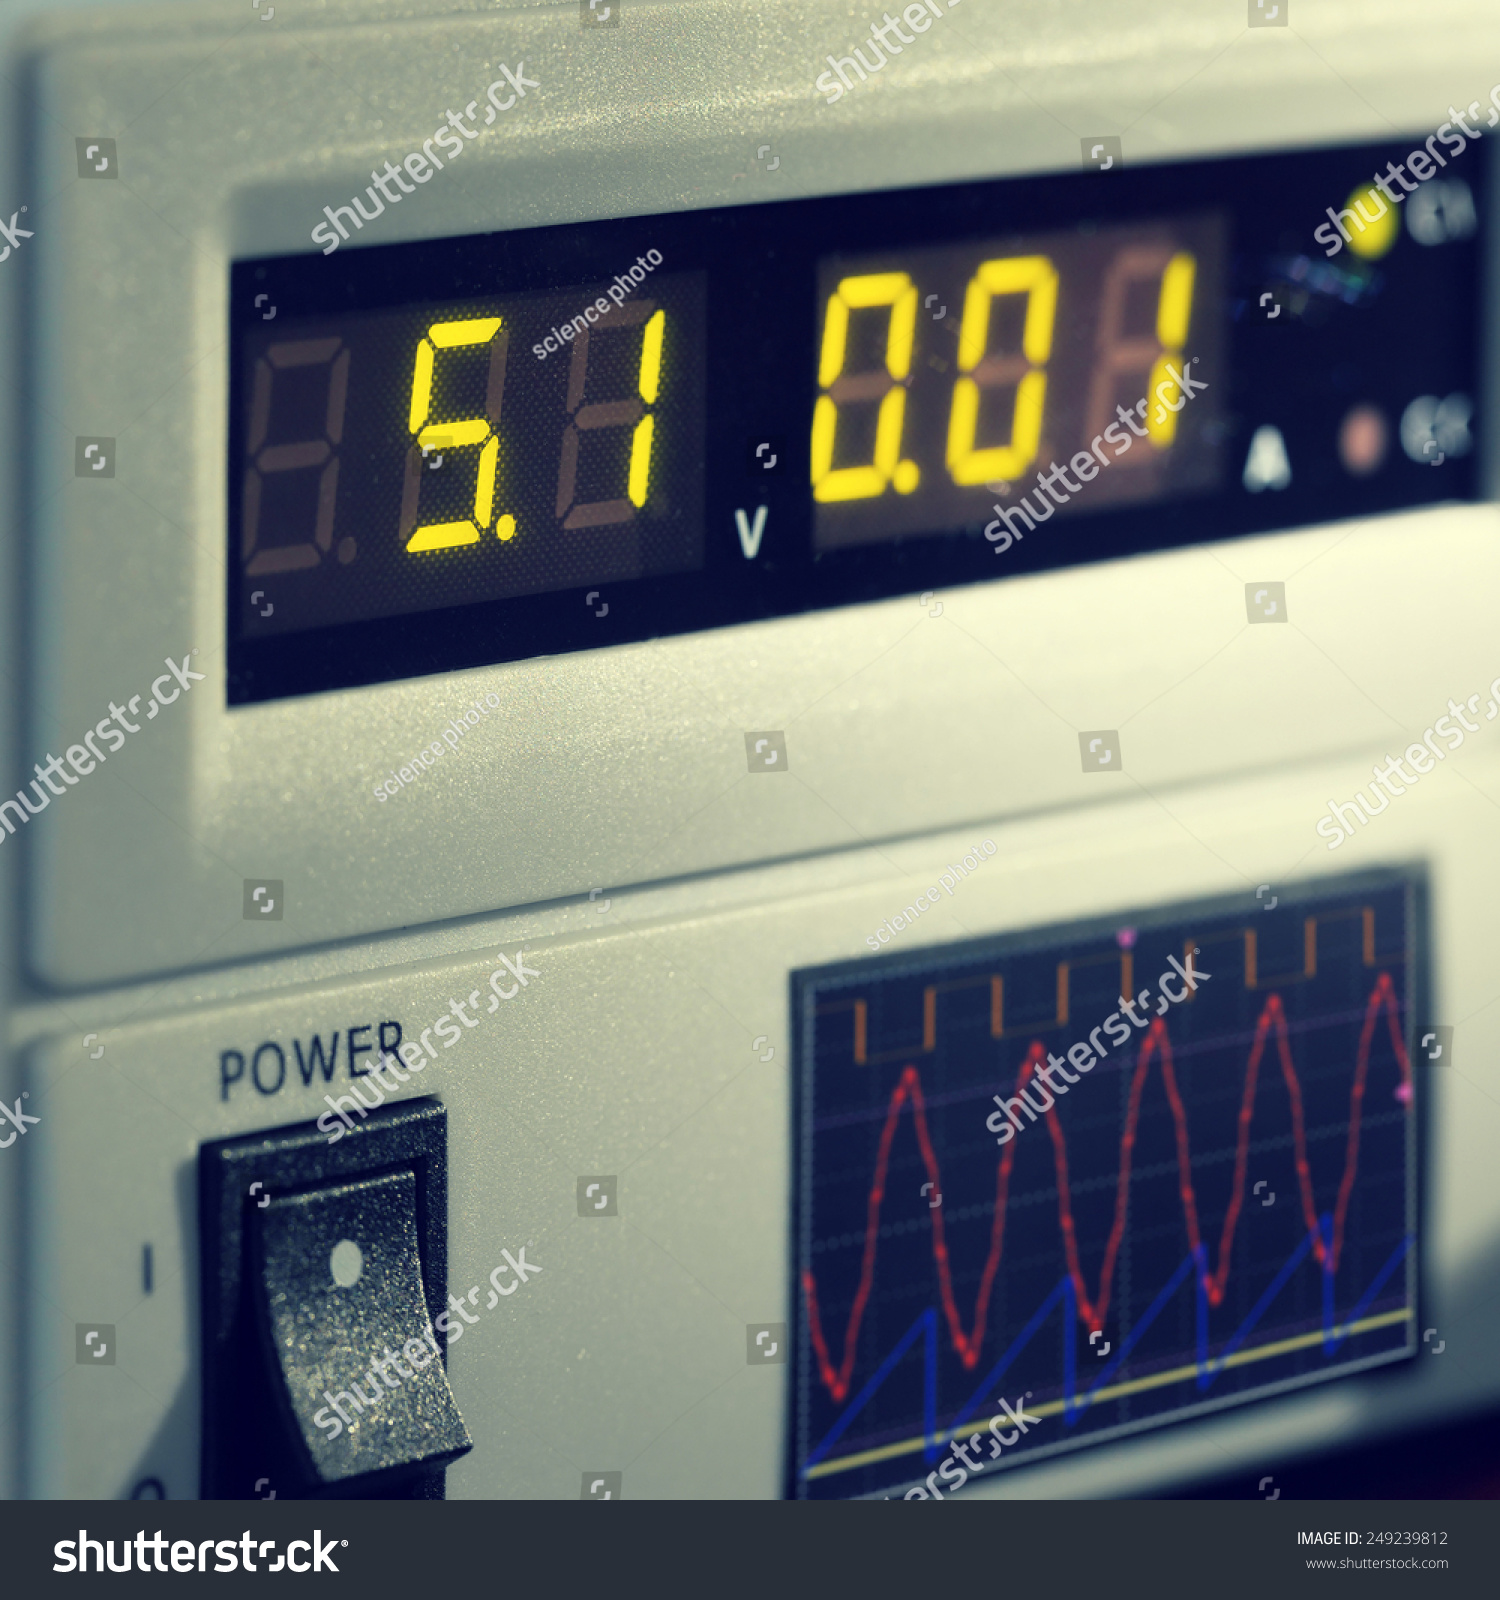 Electronic Measuring Equipment : Electronic measuring instruments stock photo